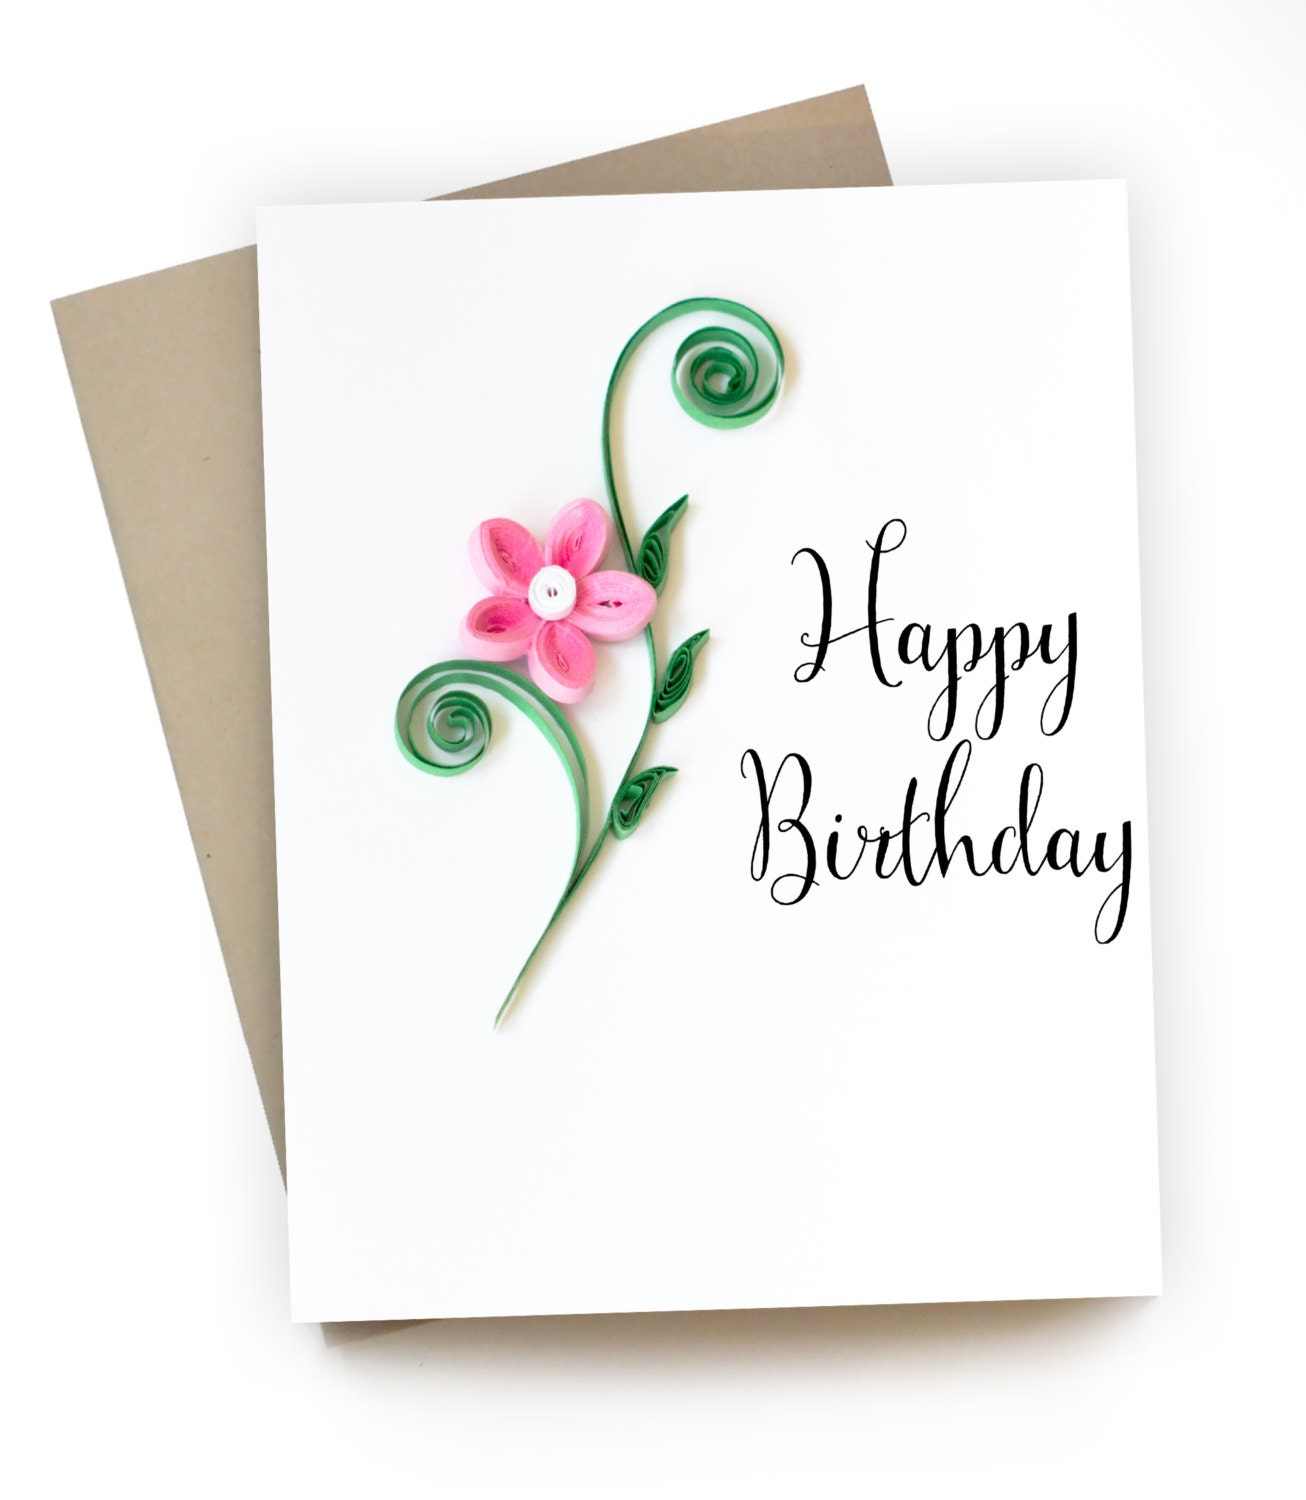 Birthday card friend birthday card happy birthday card zoom kristyandbryce Image collections